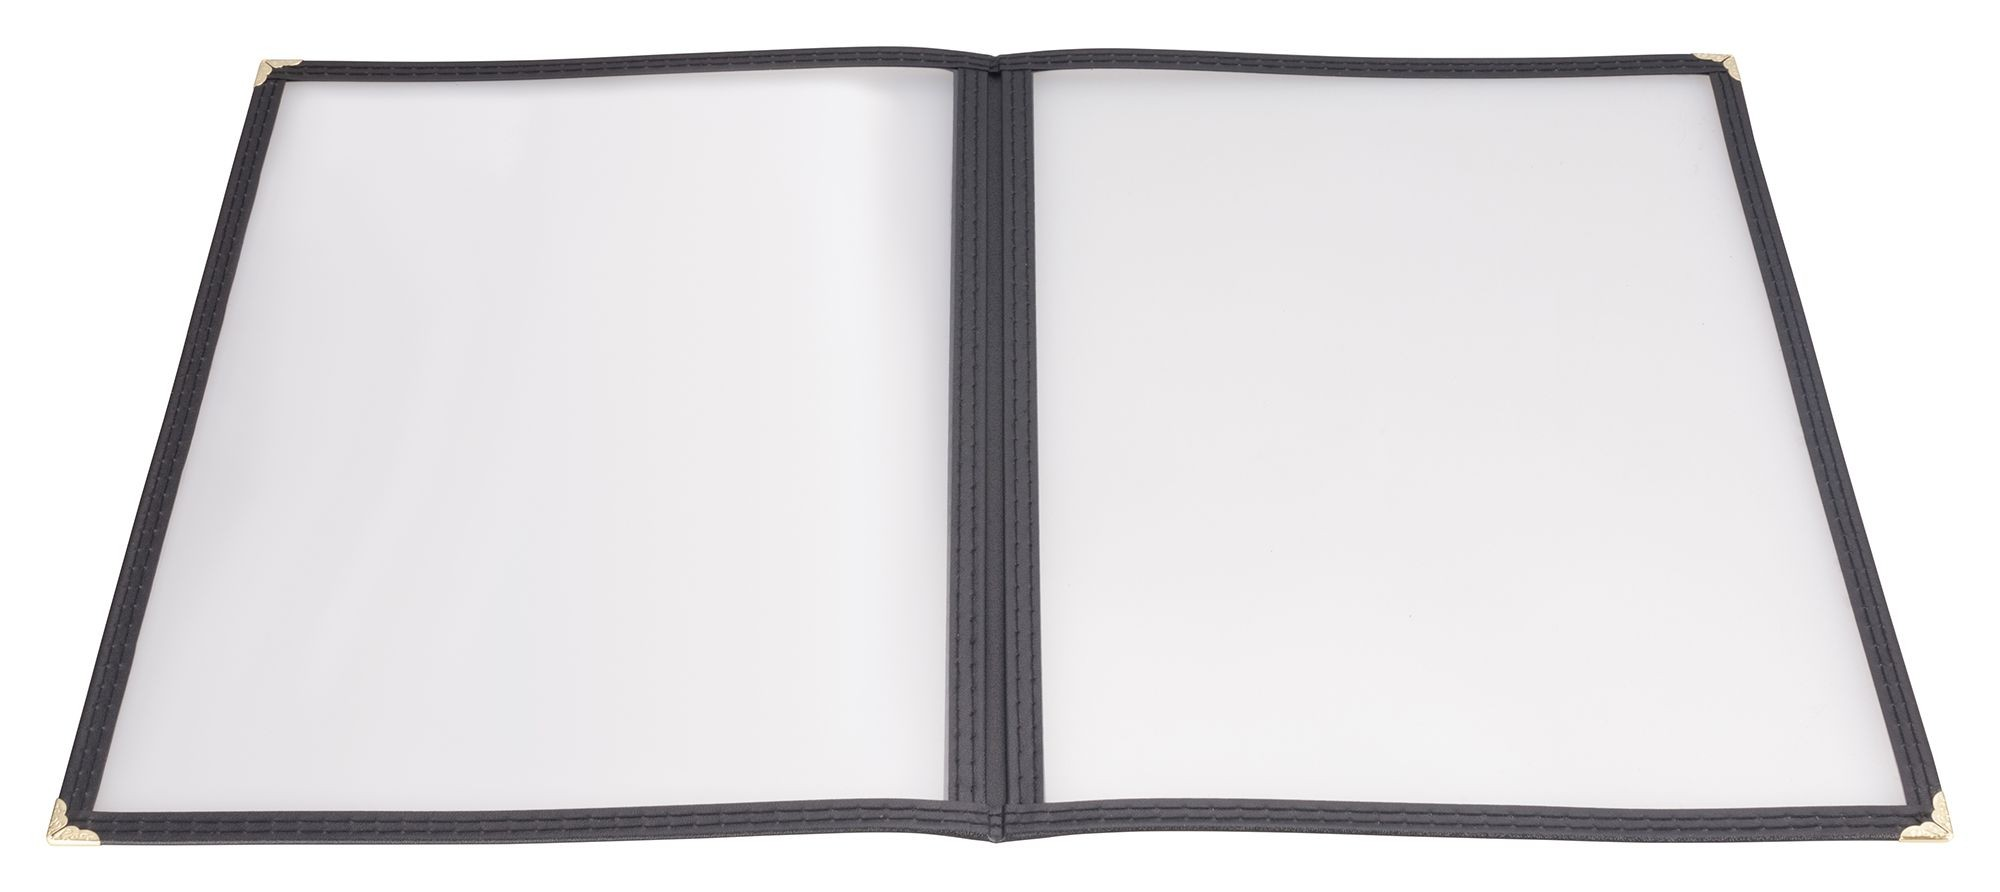 "Winco PMCD-14K Black Double Fold Menu Cover 8.5"" x 14"""